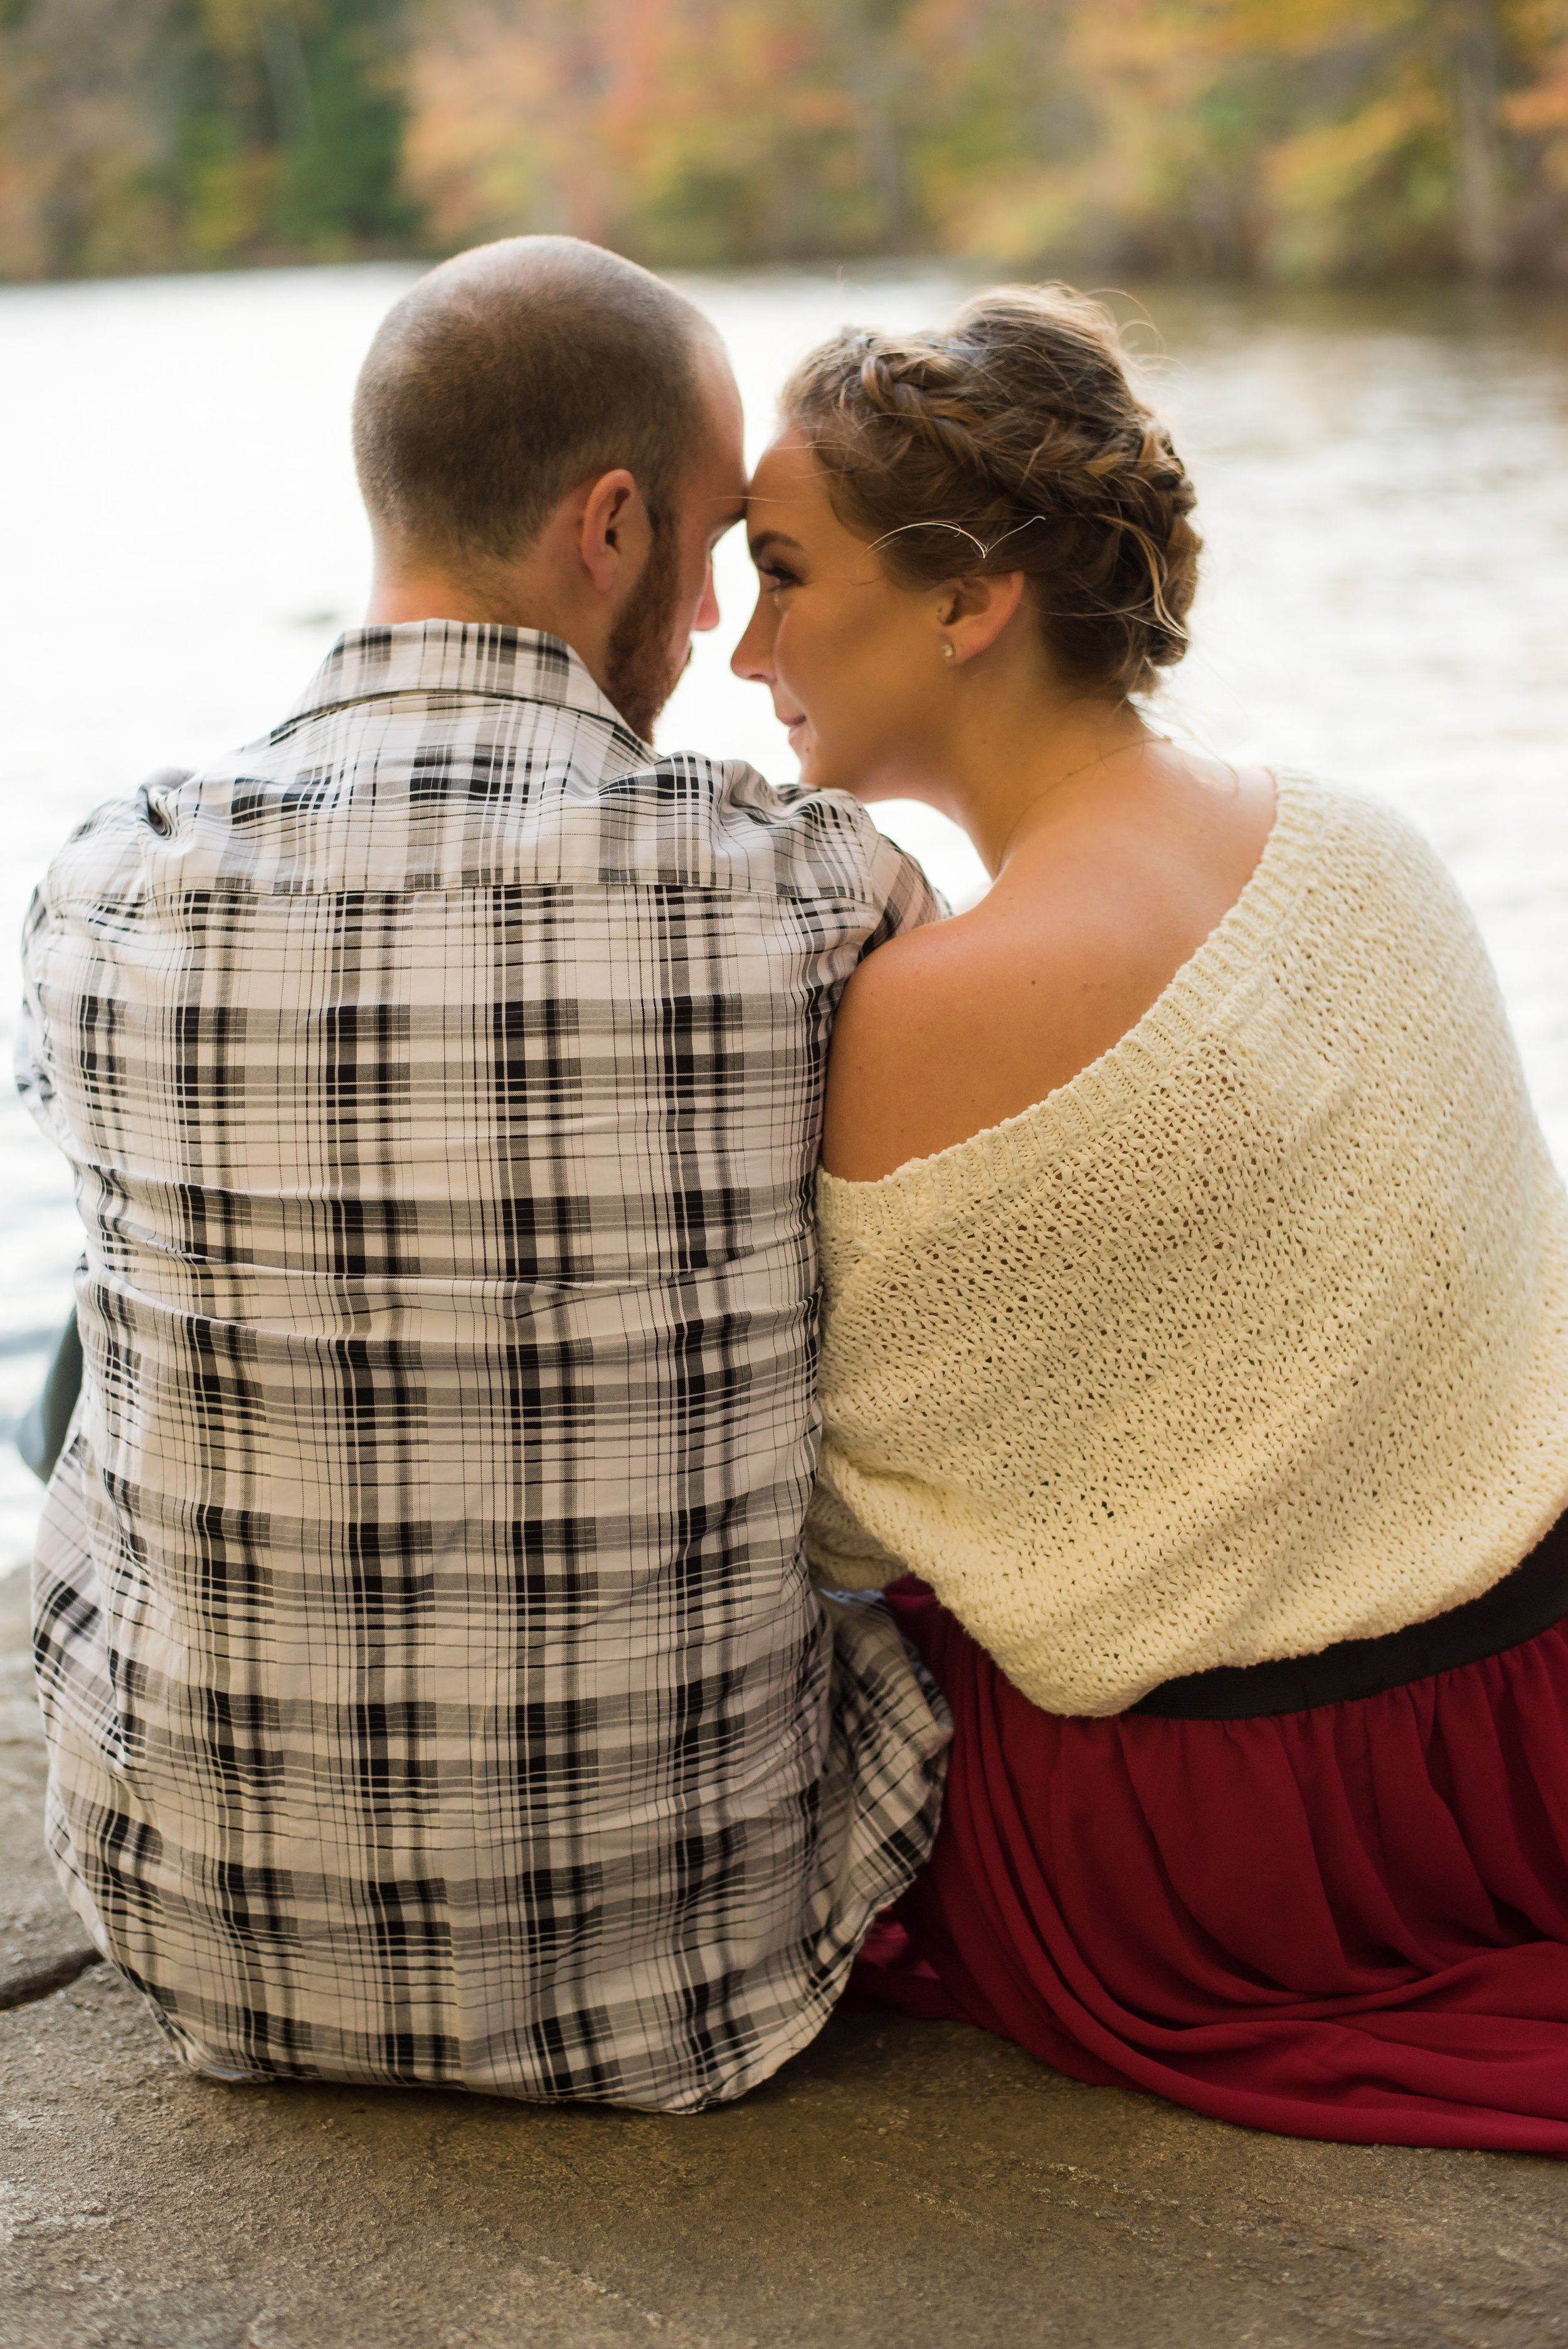 _KLE5197Knothe Engagement_.jpg